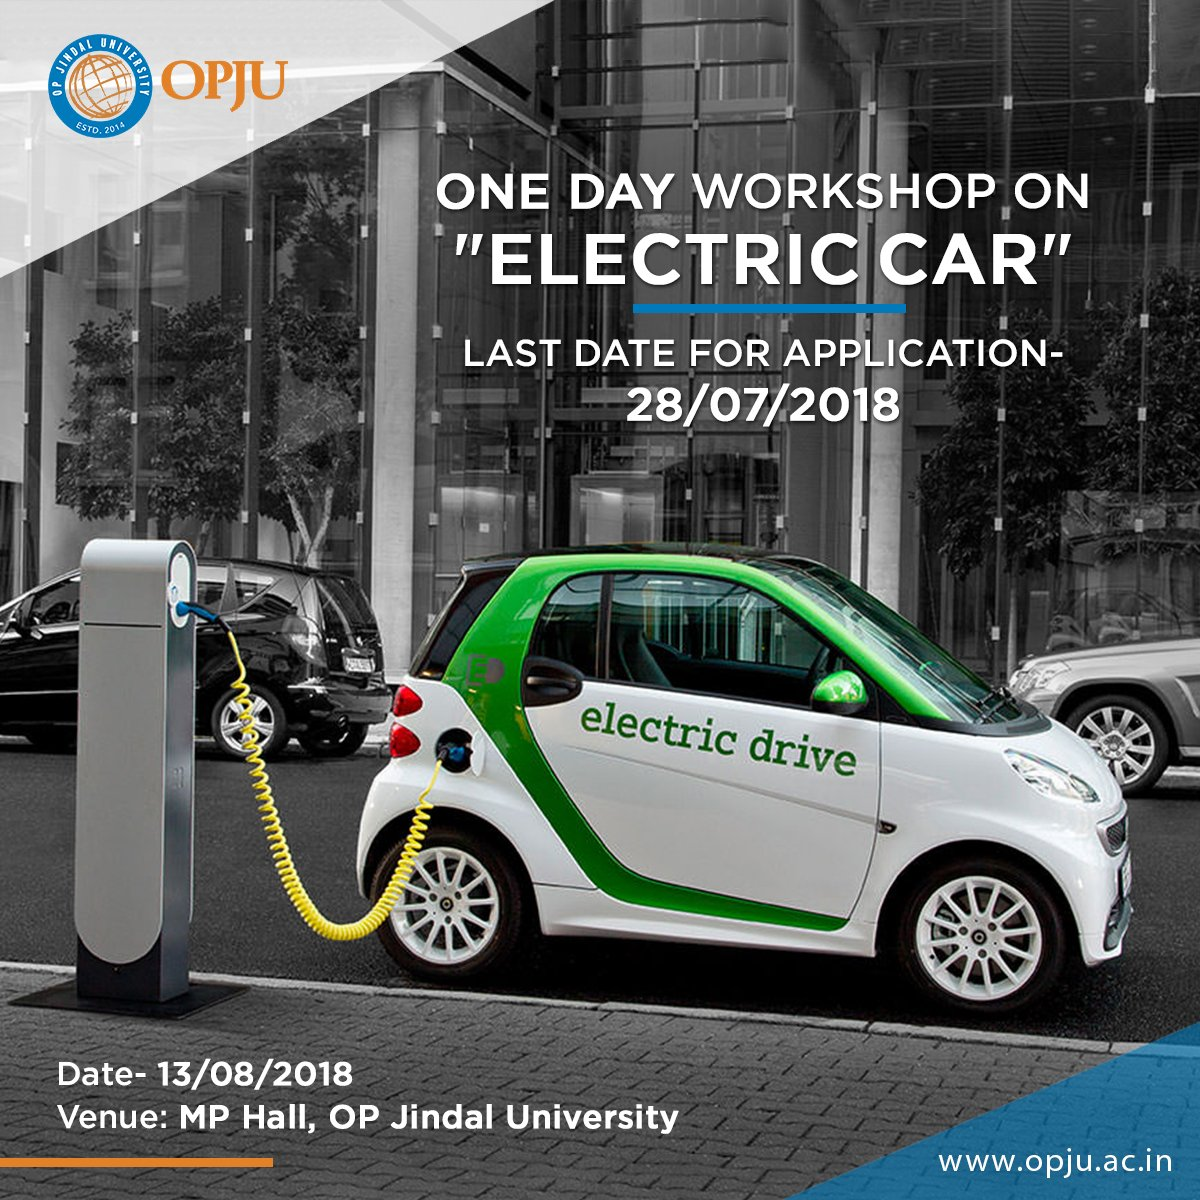 Save the Date for this exciting one day #WORKSHOP.  Department of #MechanicalEngineering in association with CIAC@OPJU is going to organise a One Day invited talk (Workshop) on &quot;Advances in #ElectricCar and its future prospects in India&quot;. For Registration:  http:// bit.ly/2KT6tc8  &nbsp;  <br>http://pic.twitter.com/jWfk8zYaP1